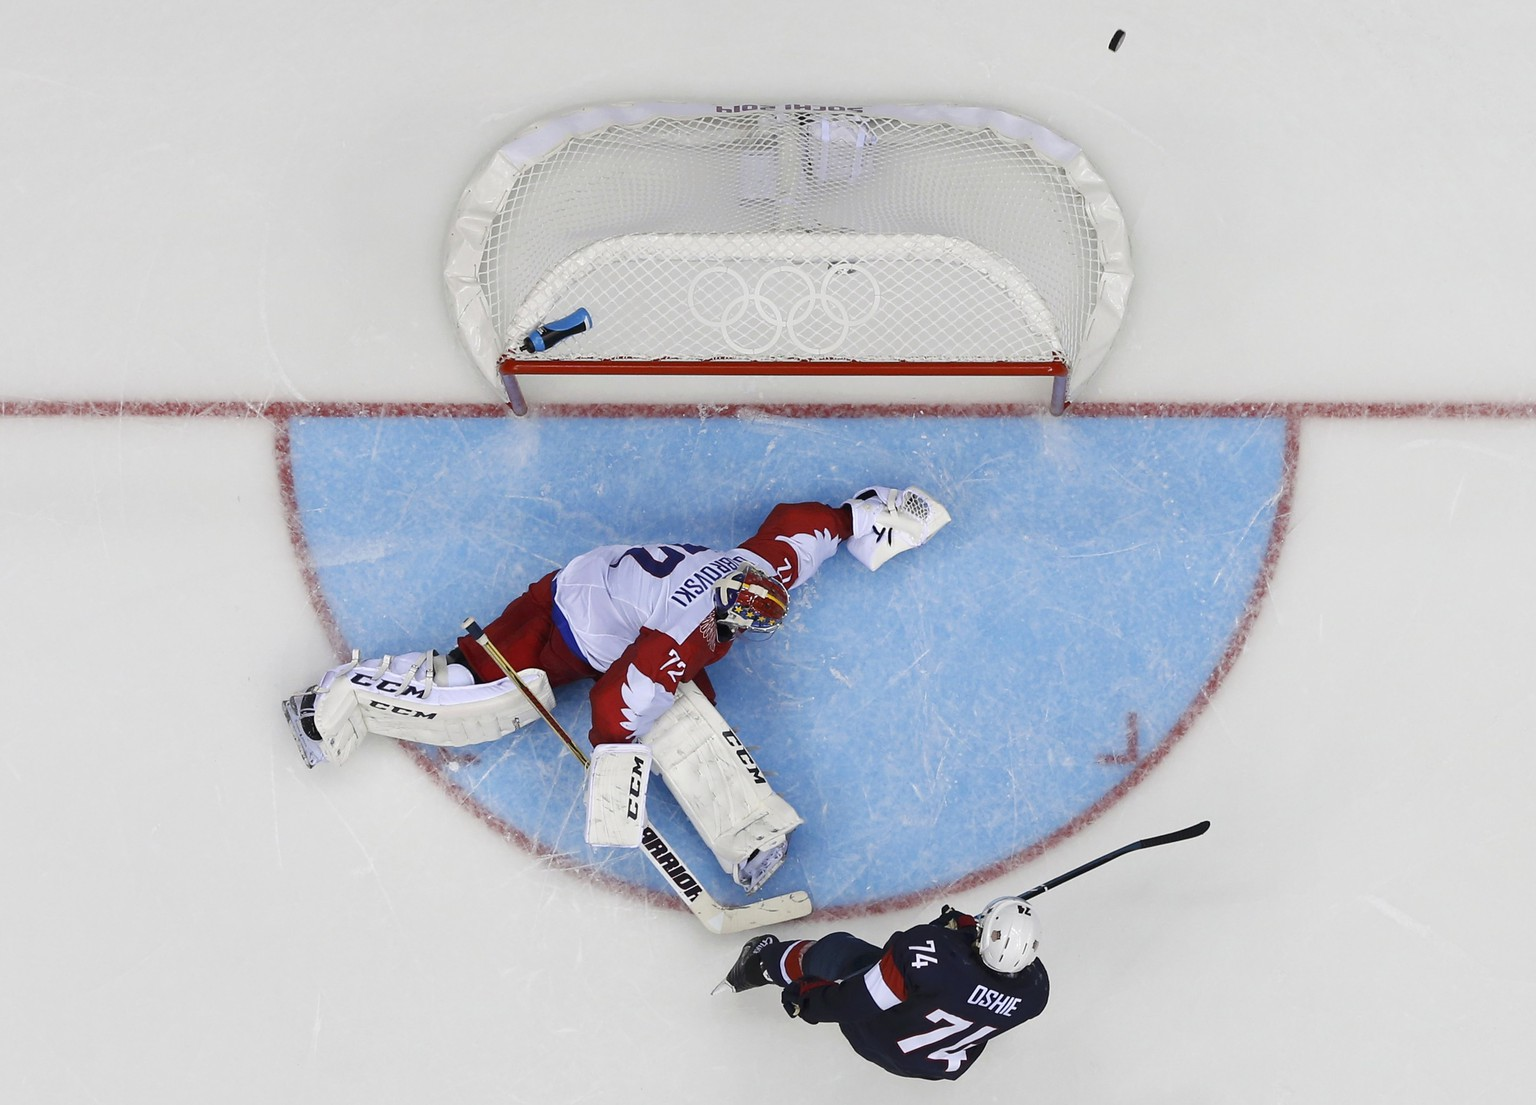 Team USA's T.J. Oshie misses on his shootout attempt on Russia's goalie Sergei Bobrovski during their men's preliminary round ice hockey game at the Sochi 2014 Winter Olympic Games February 15, 2014. REUTERS/Mark Blinch (RUSSIA  - Tags: SPORT ICE HOCKEY OLYMPICS)